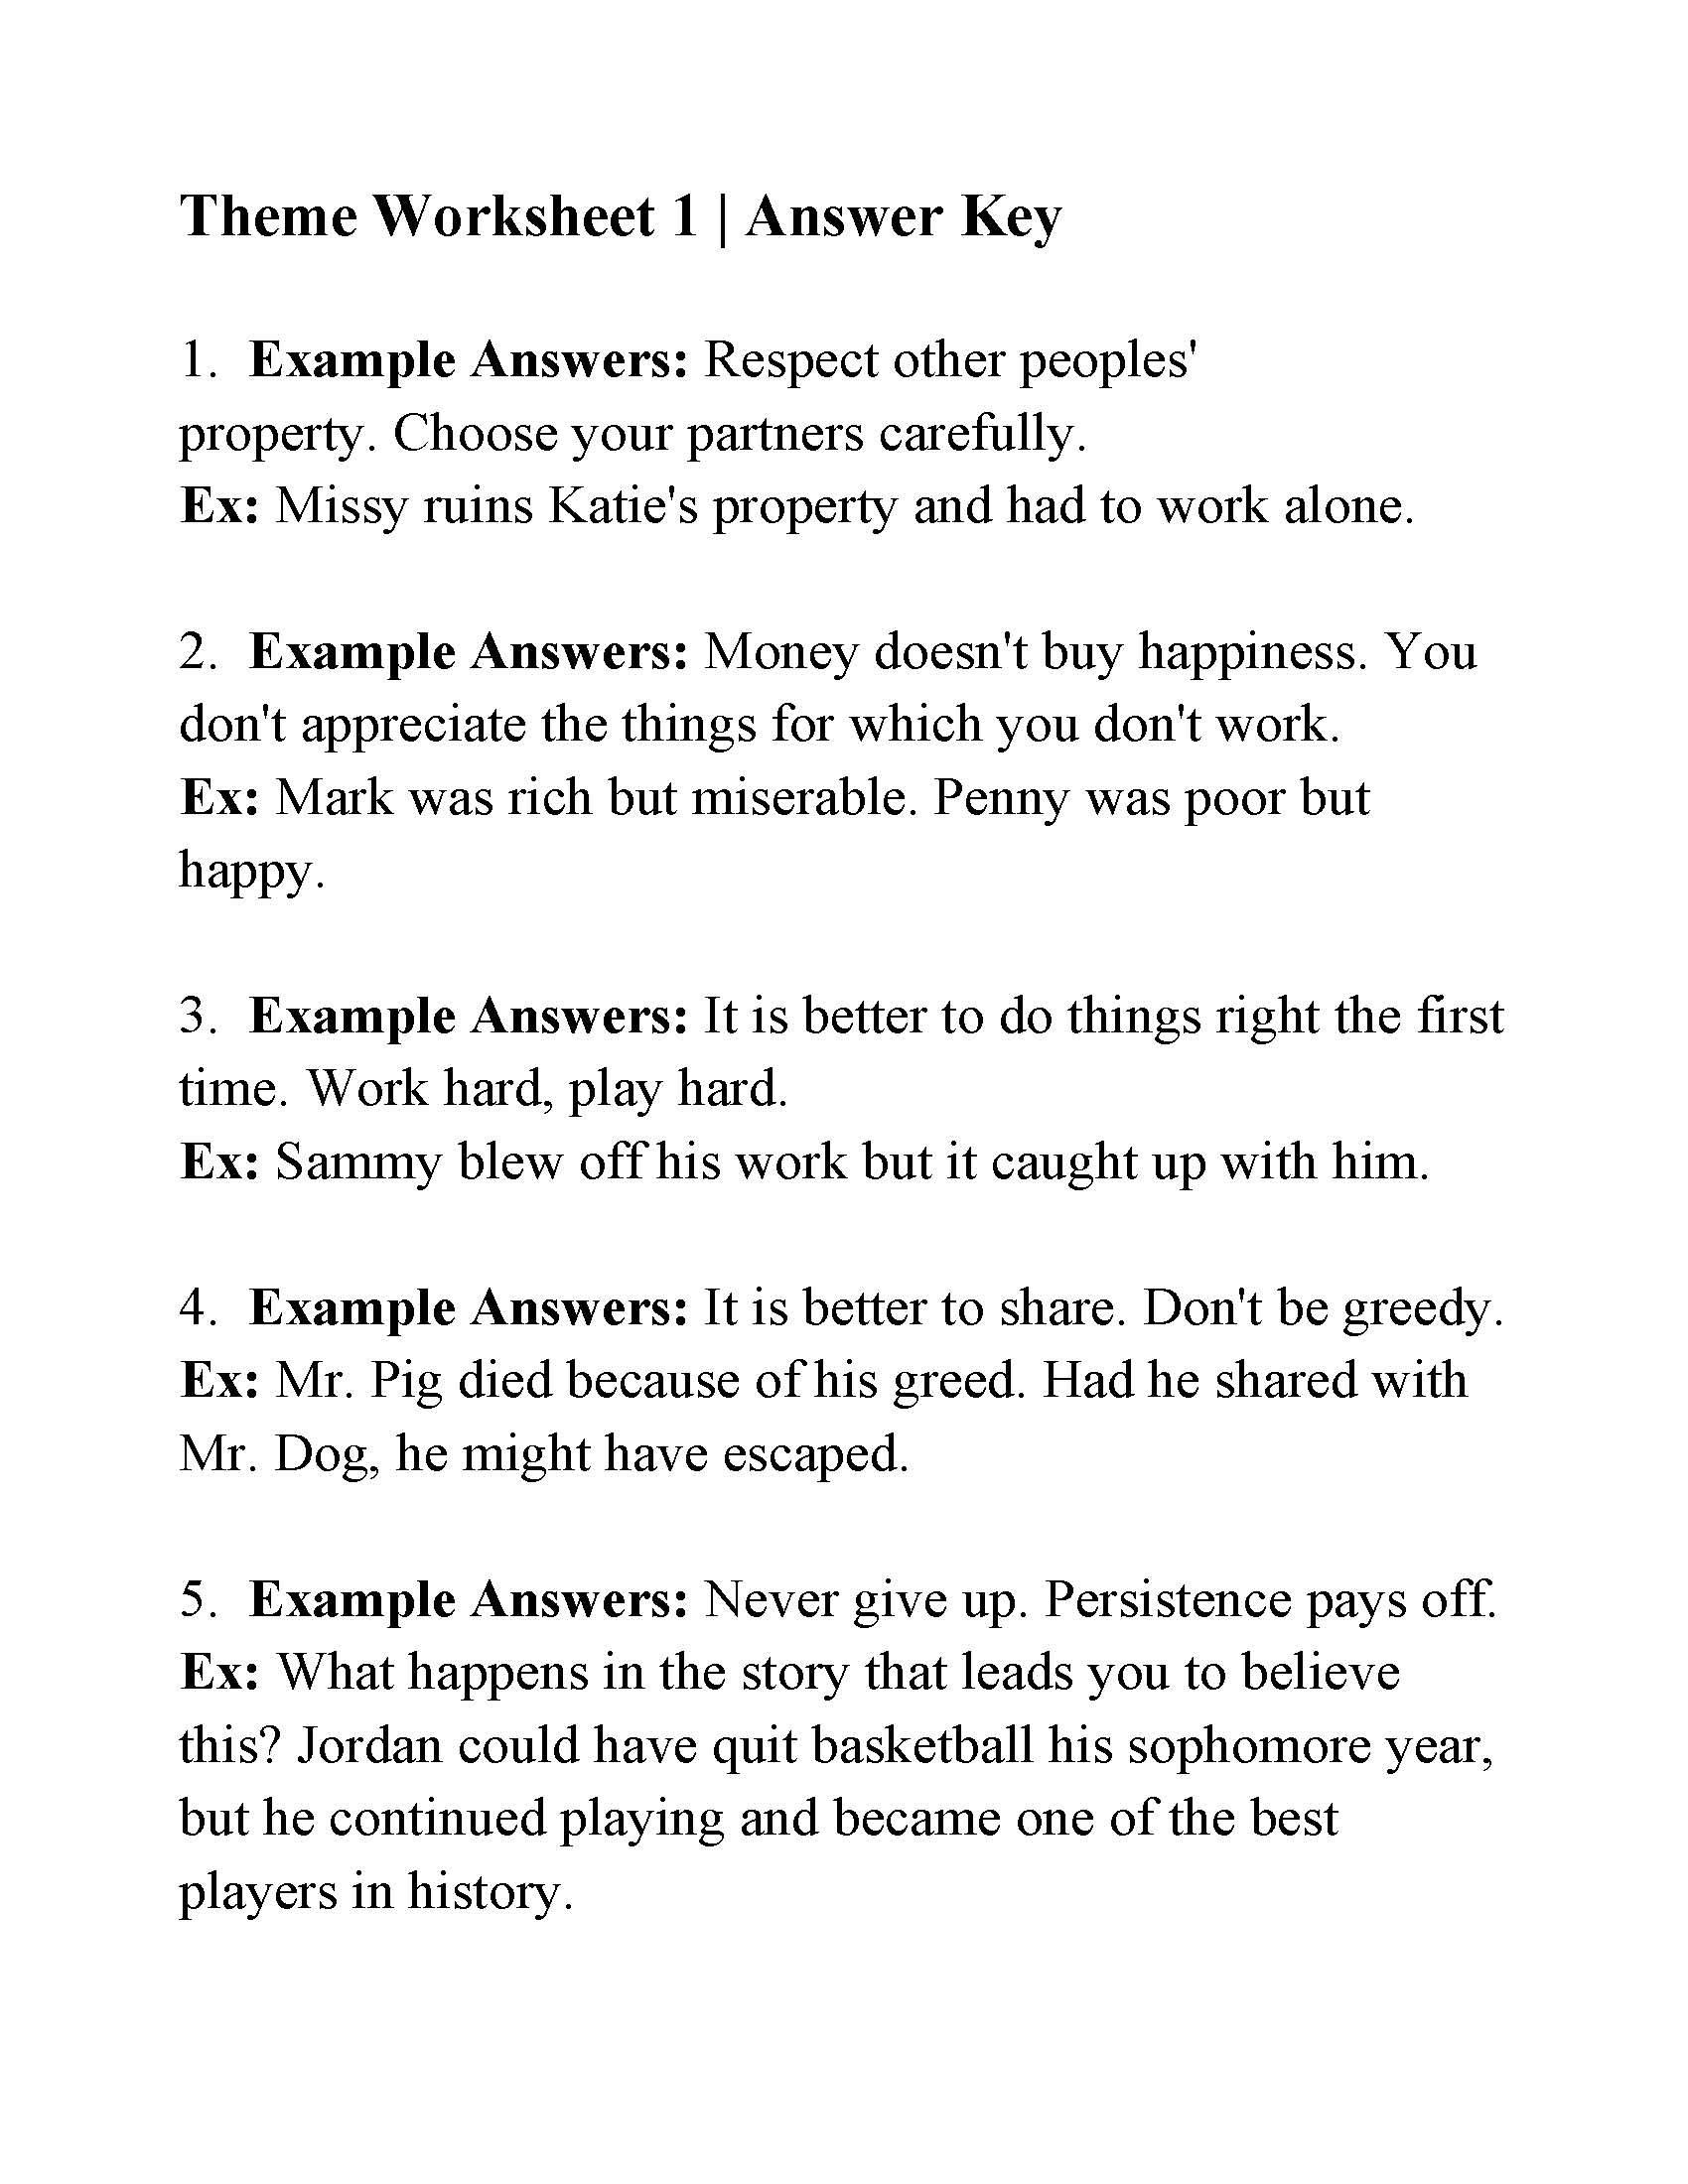 Theme Worksheets 2nd Grade This is the Answer Key for the theme Worksheet 1